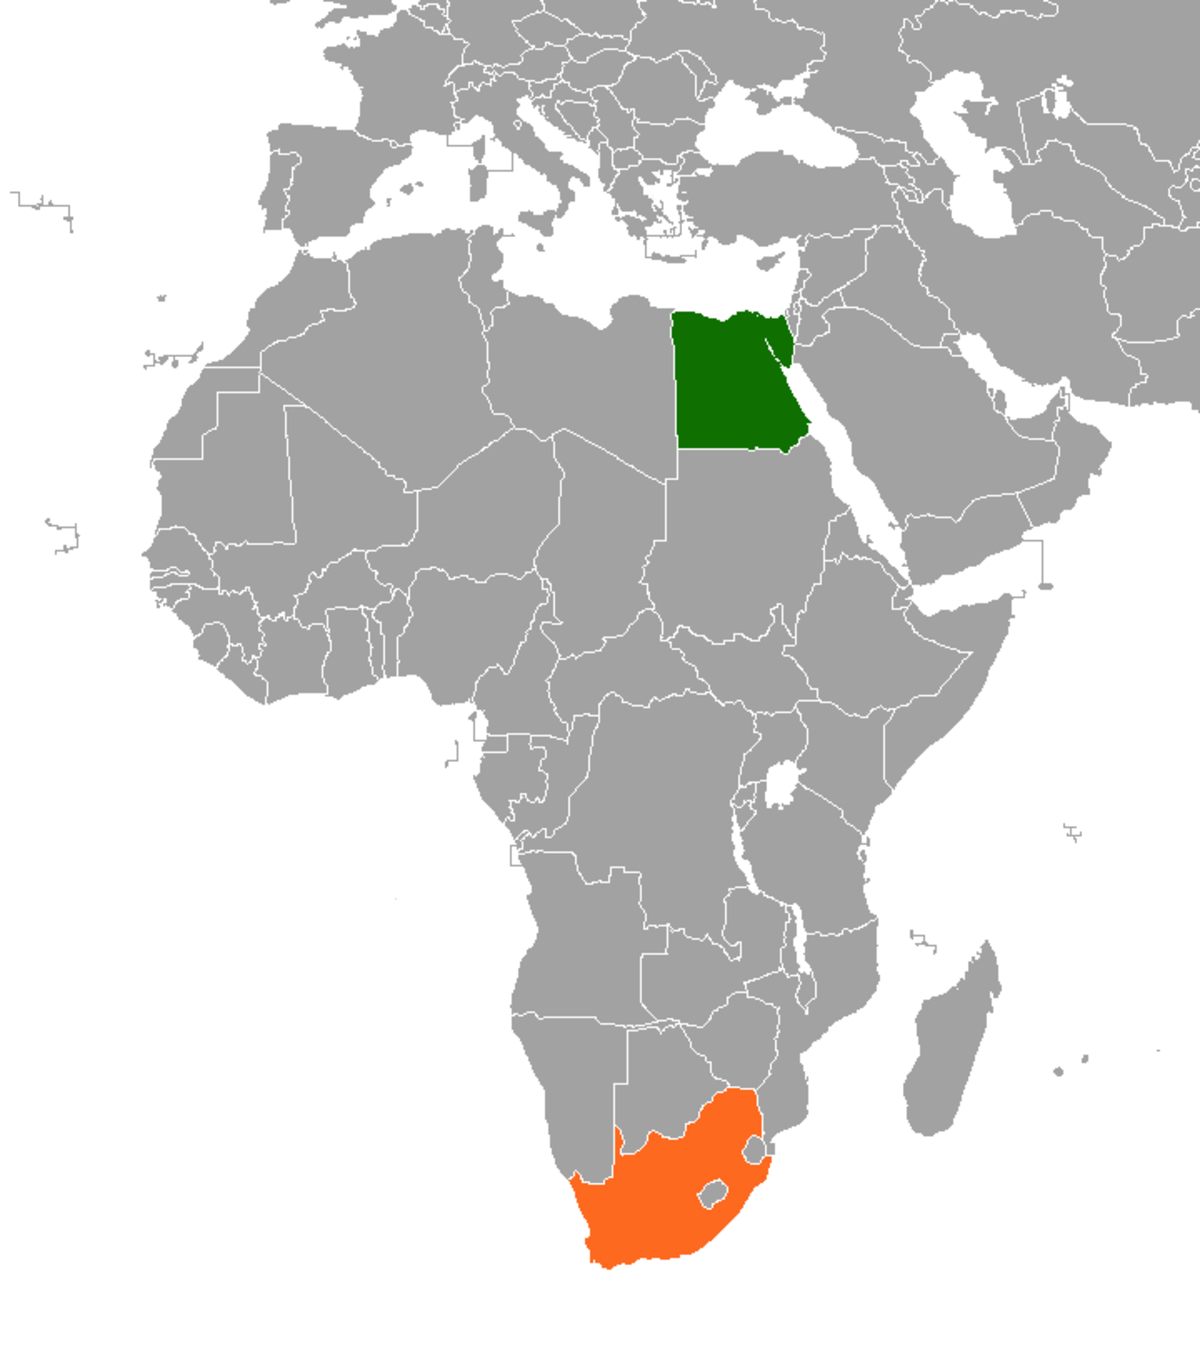 EgyptSouth Africa Relations Wikipedia - Is egypt in africa